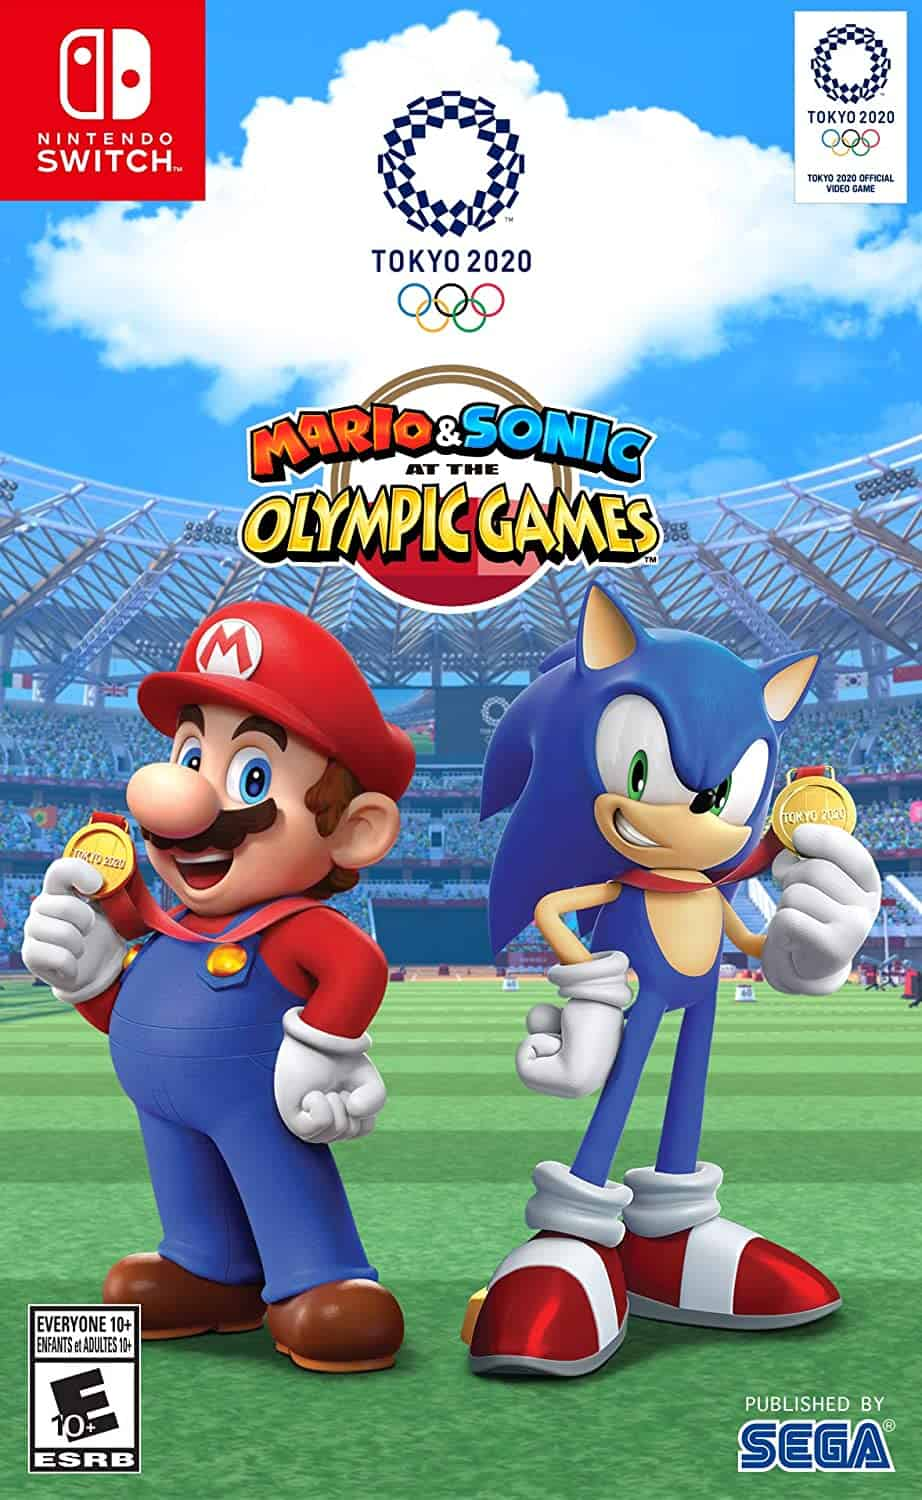 Best Mario multiplayer games - Mario & Sonic at the Olympic Games Tokyo 2020